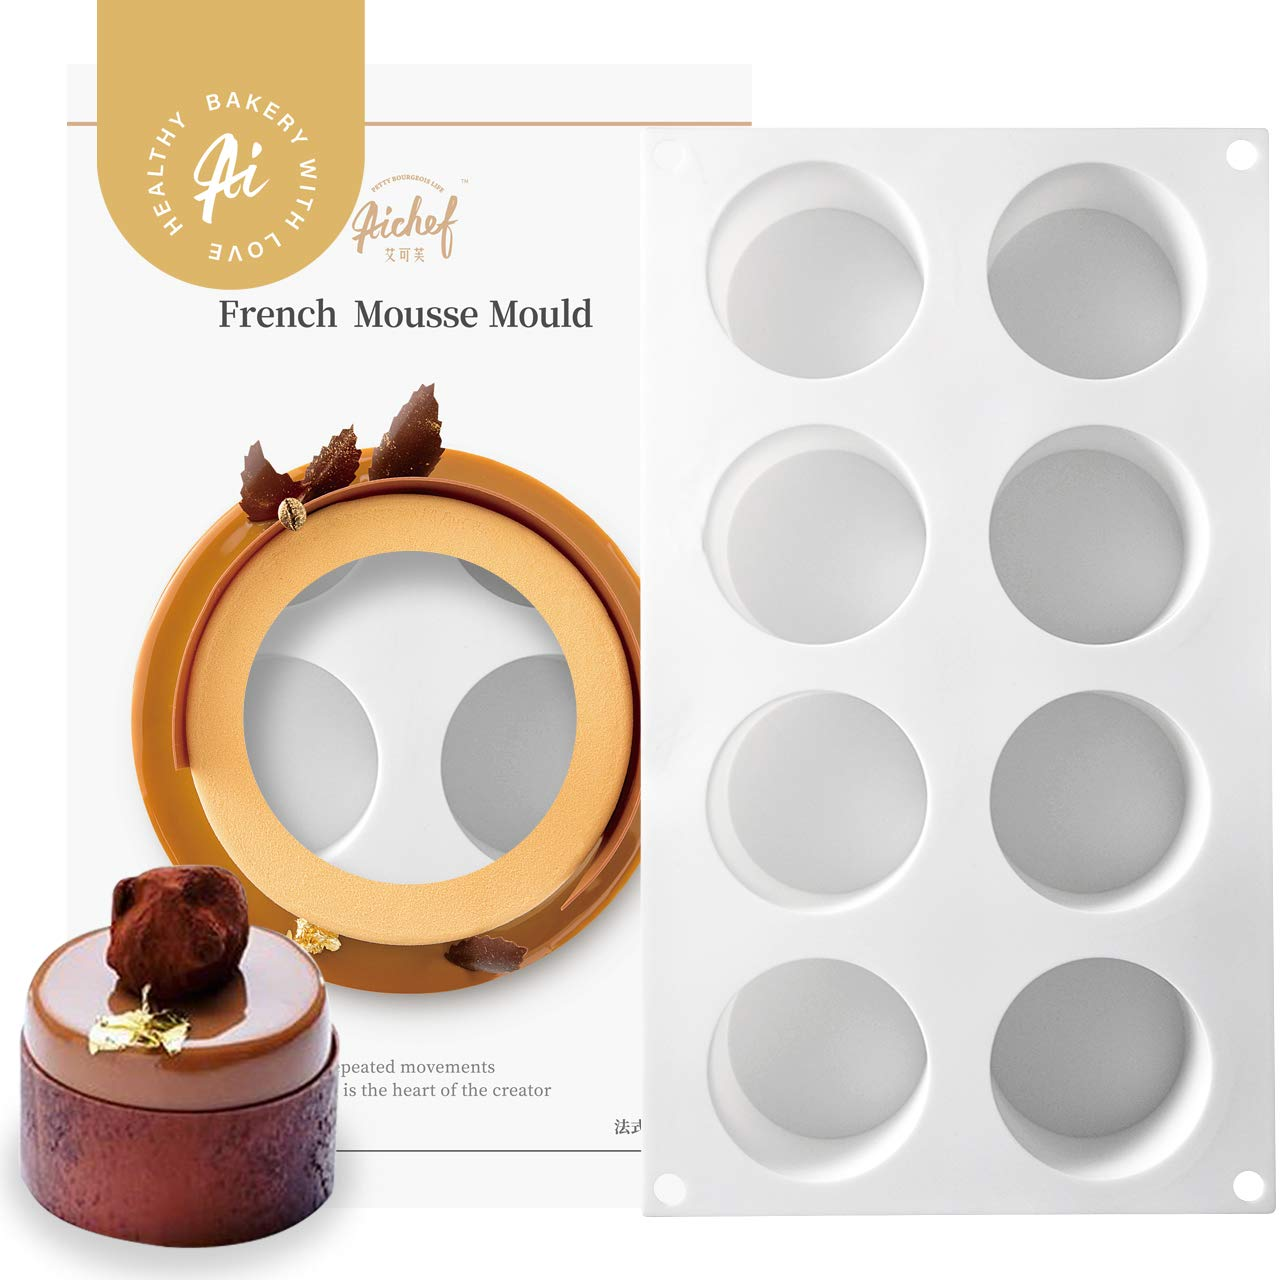 AiChef Silicone Mold for Baking High Cylinder Mold Chocolate Mousse Cake Dessert Molds,6-Cavity by AICHEF